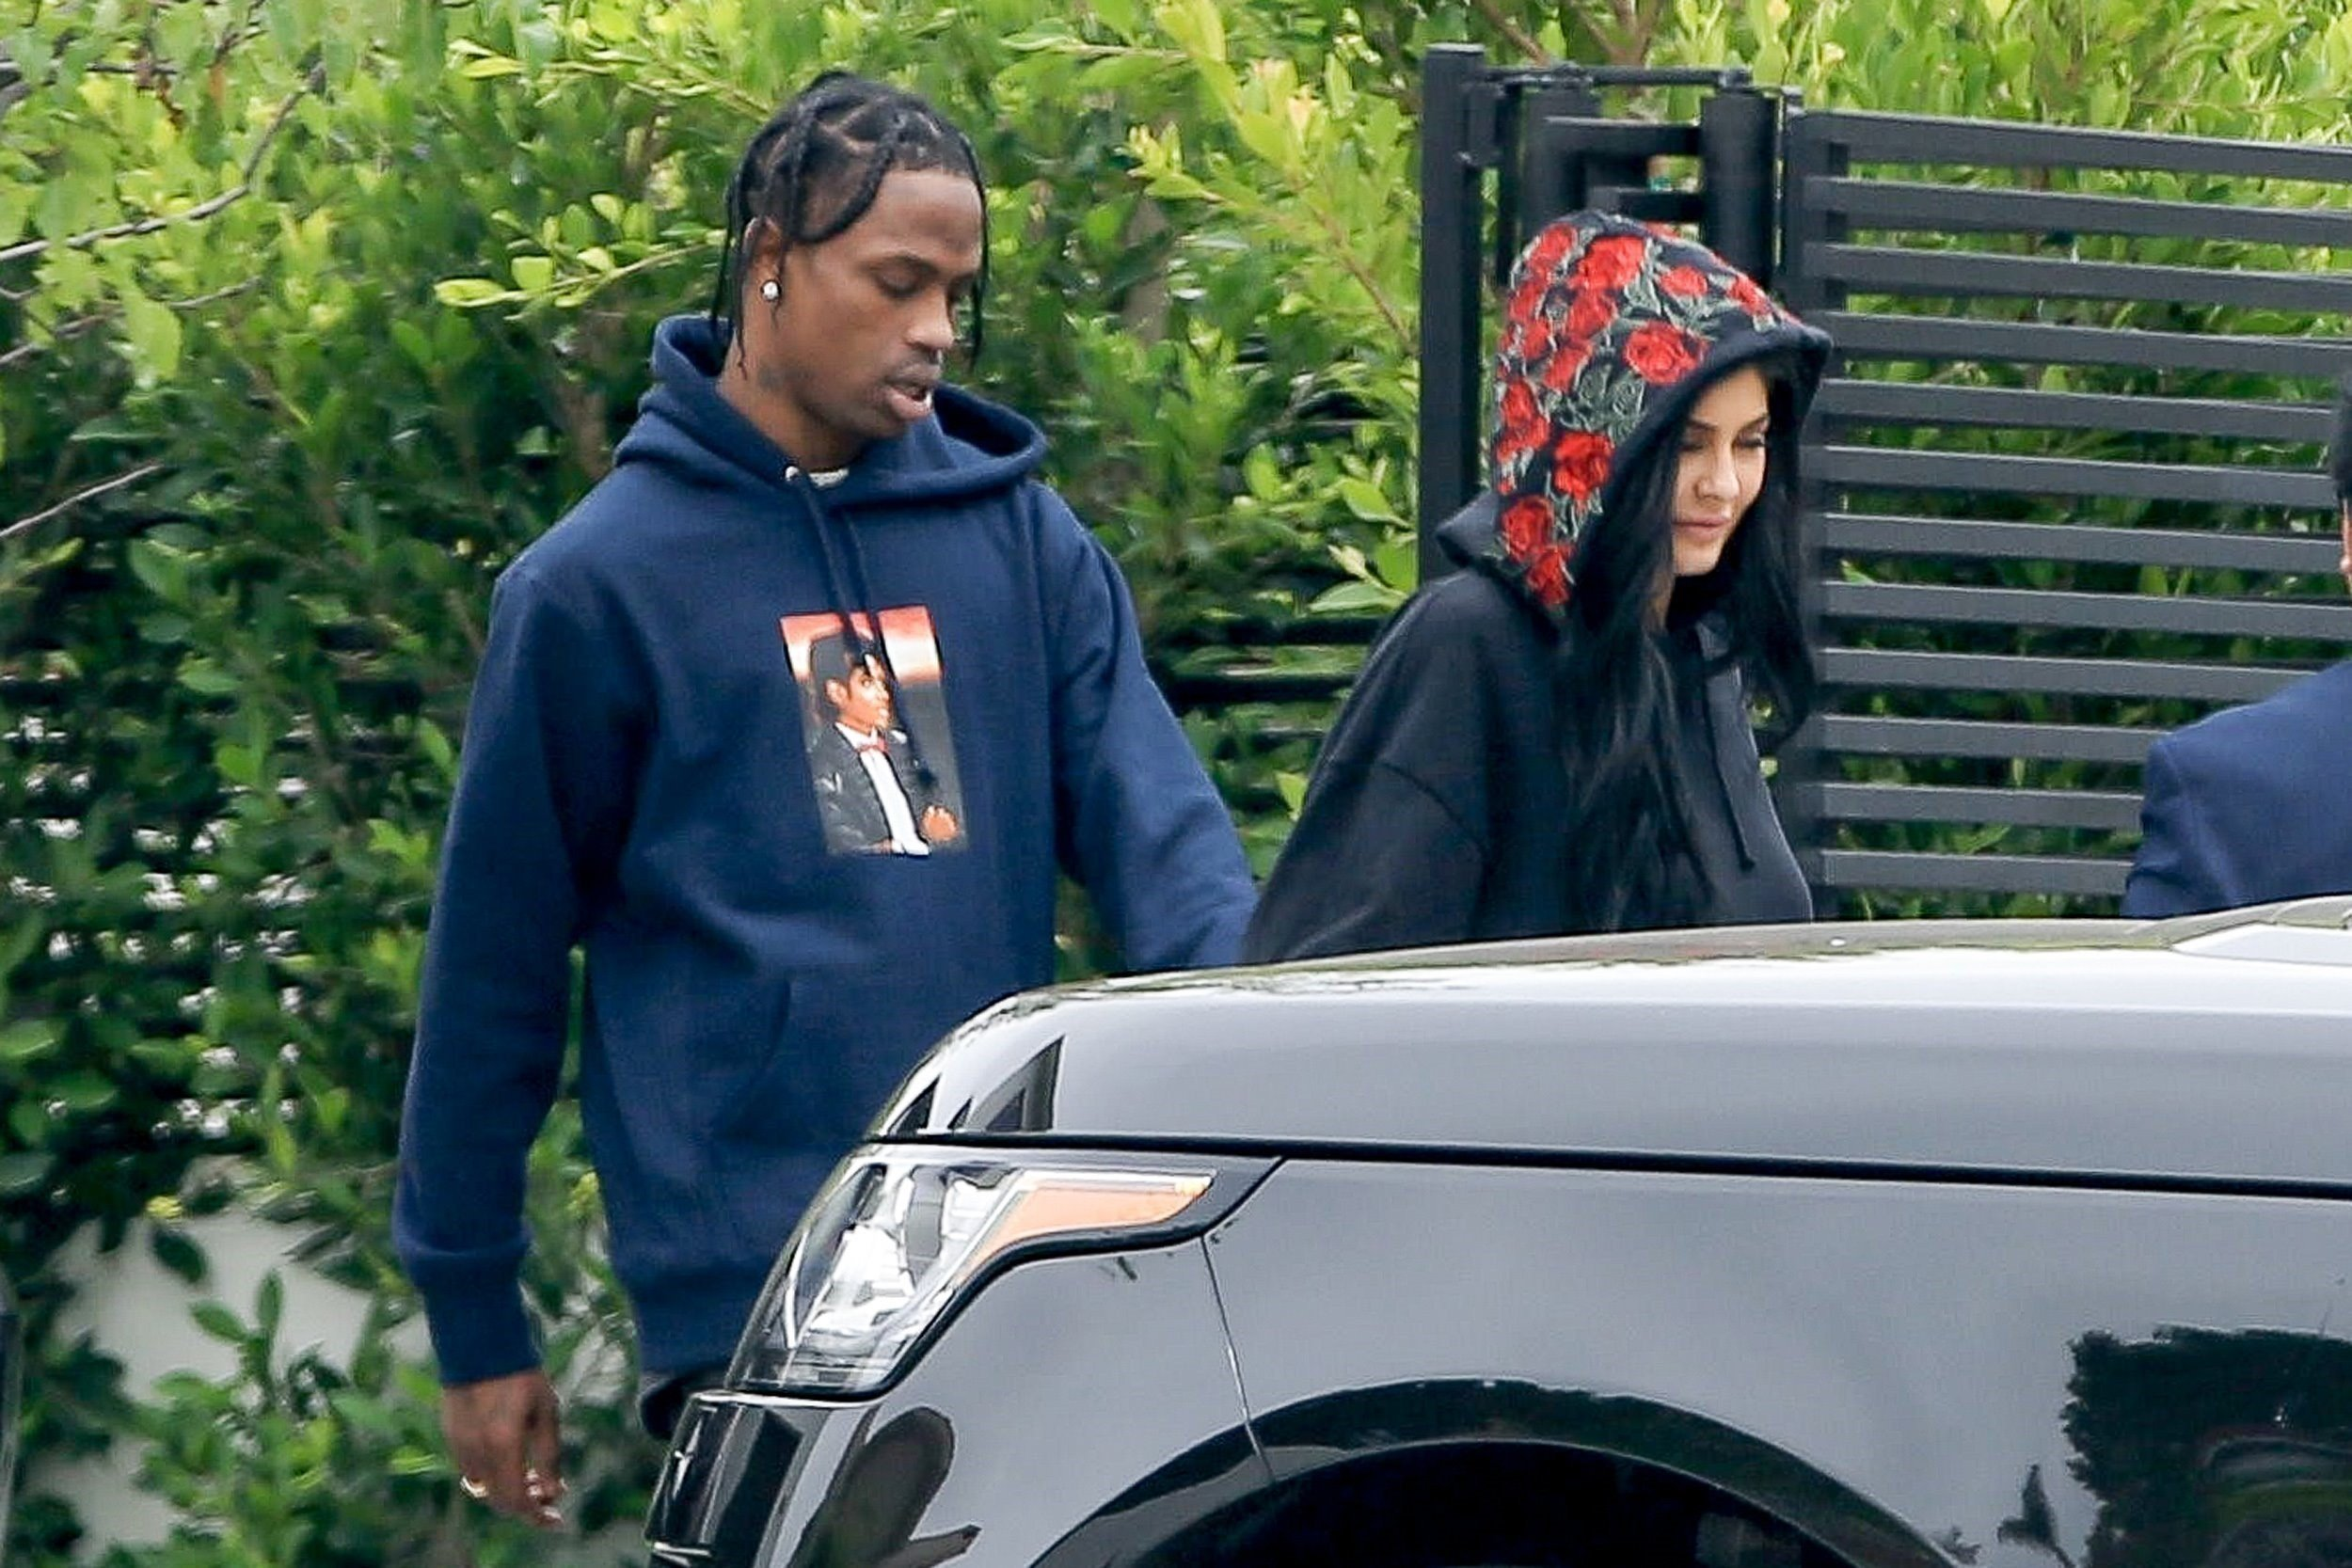 *PREMIUM-EXCLUSIVE* Los Angeles, CA  - Young Reality TV Star Kylie Jenner visited Travis Scott as he gets ready to fly out of Town. At one point, he grabbed her and lifted her up, to get a good feel, before spotting our cameras. It also looked like he gave her a painting, as we can see her loading up her Rover.  Pictured: Kylie Jenner, Travis Scott  BACKGRID USA 31 MAY 2017, Image: 334210905, License: Rights-managed, Restrictions: , Model Release: no, Credit line: Profimedia, AKM-GSI